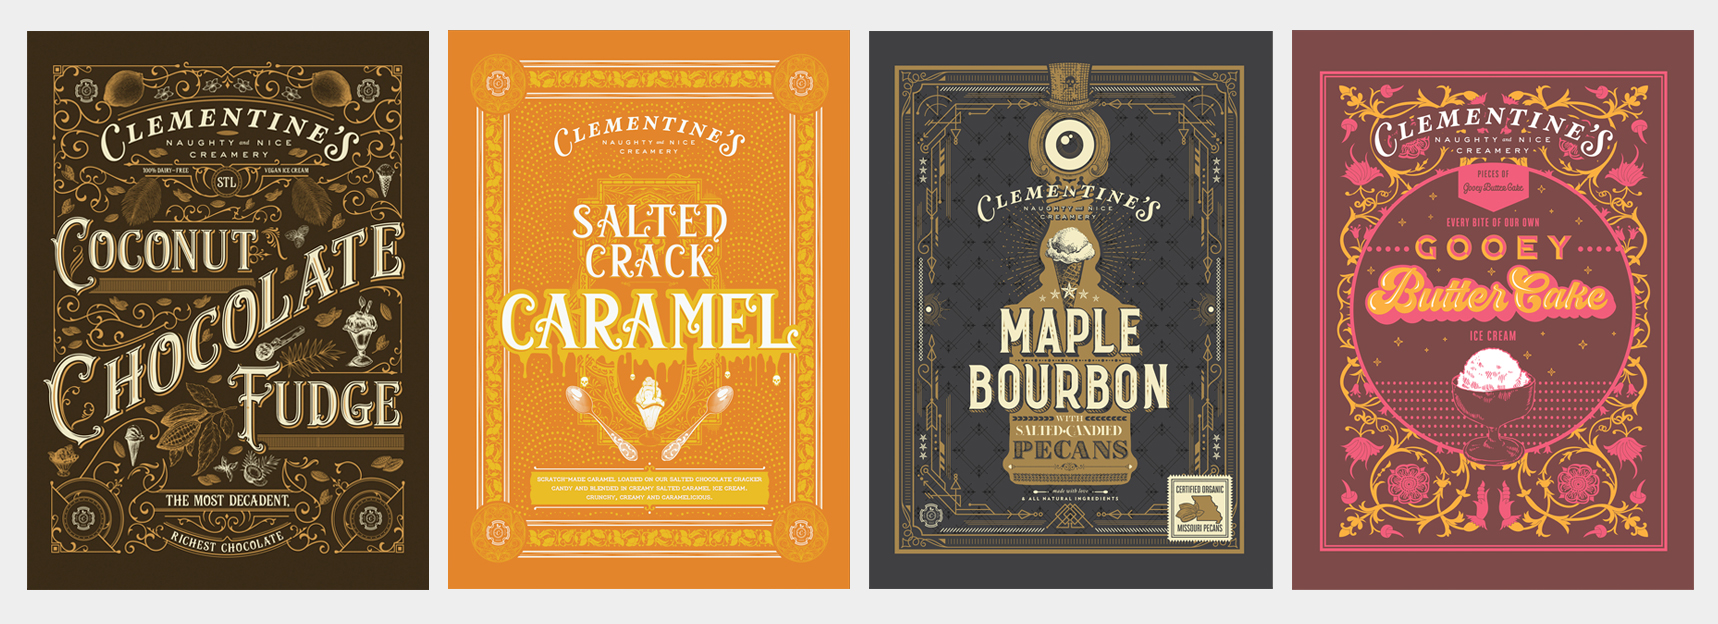 Four Posters for Clementine's